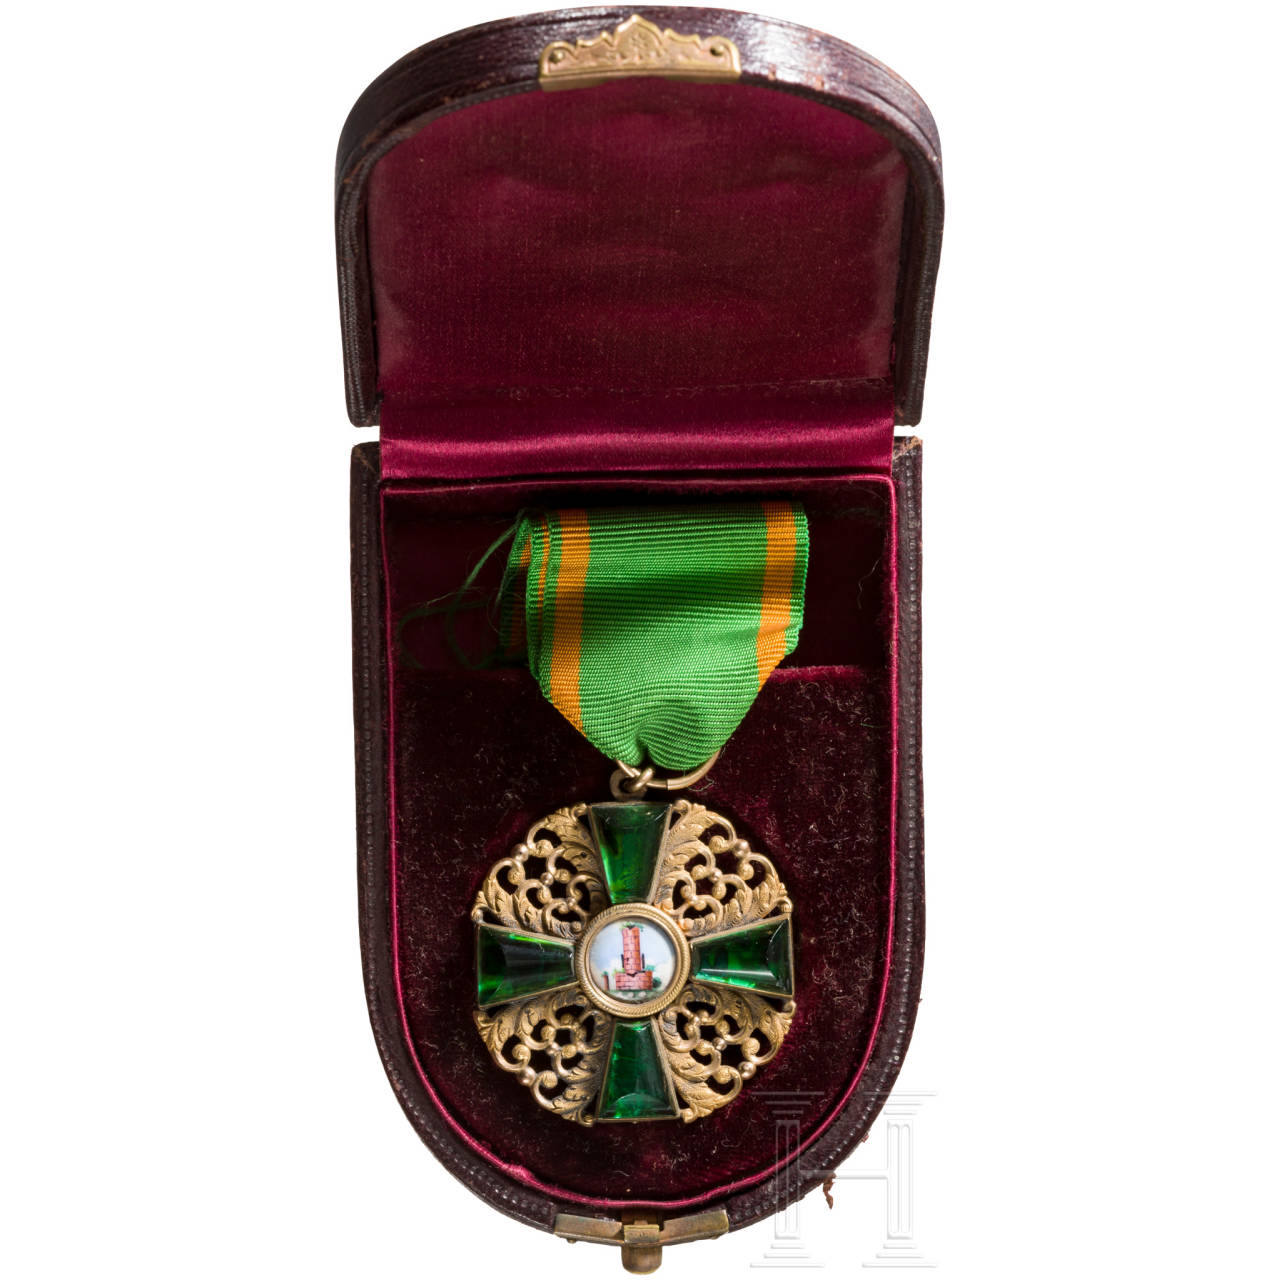 Order of the Zähringer Lion - Knight's Cross 1st class in case